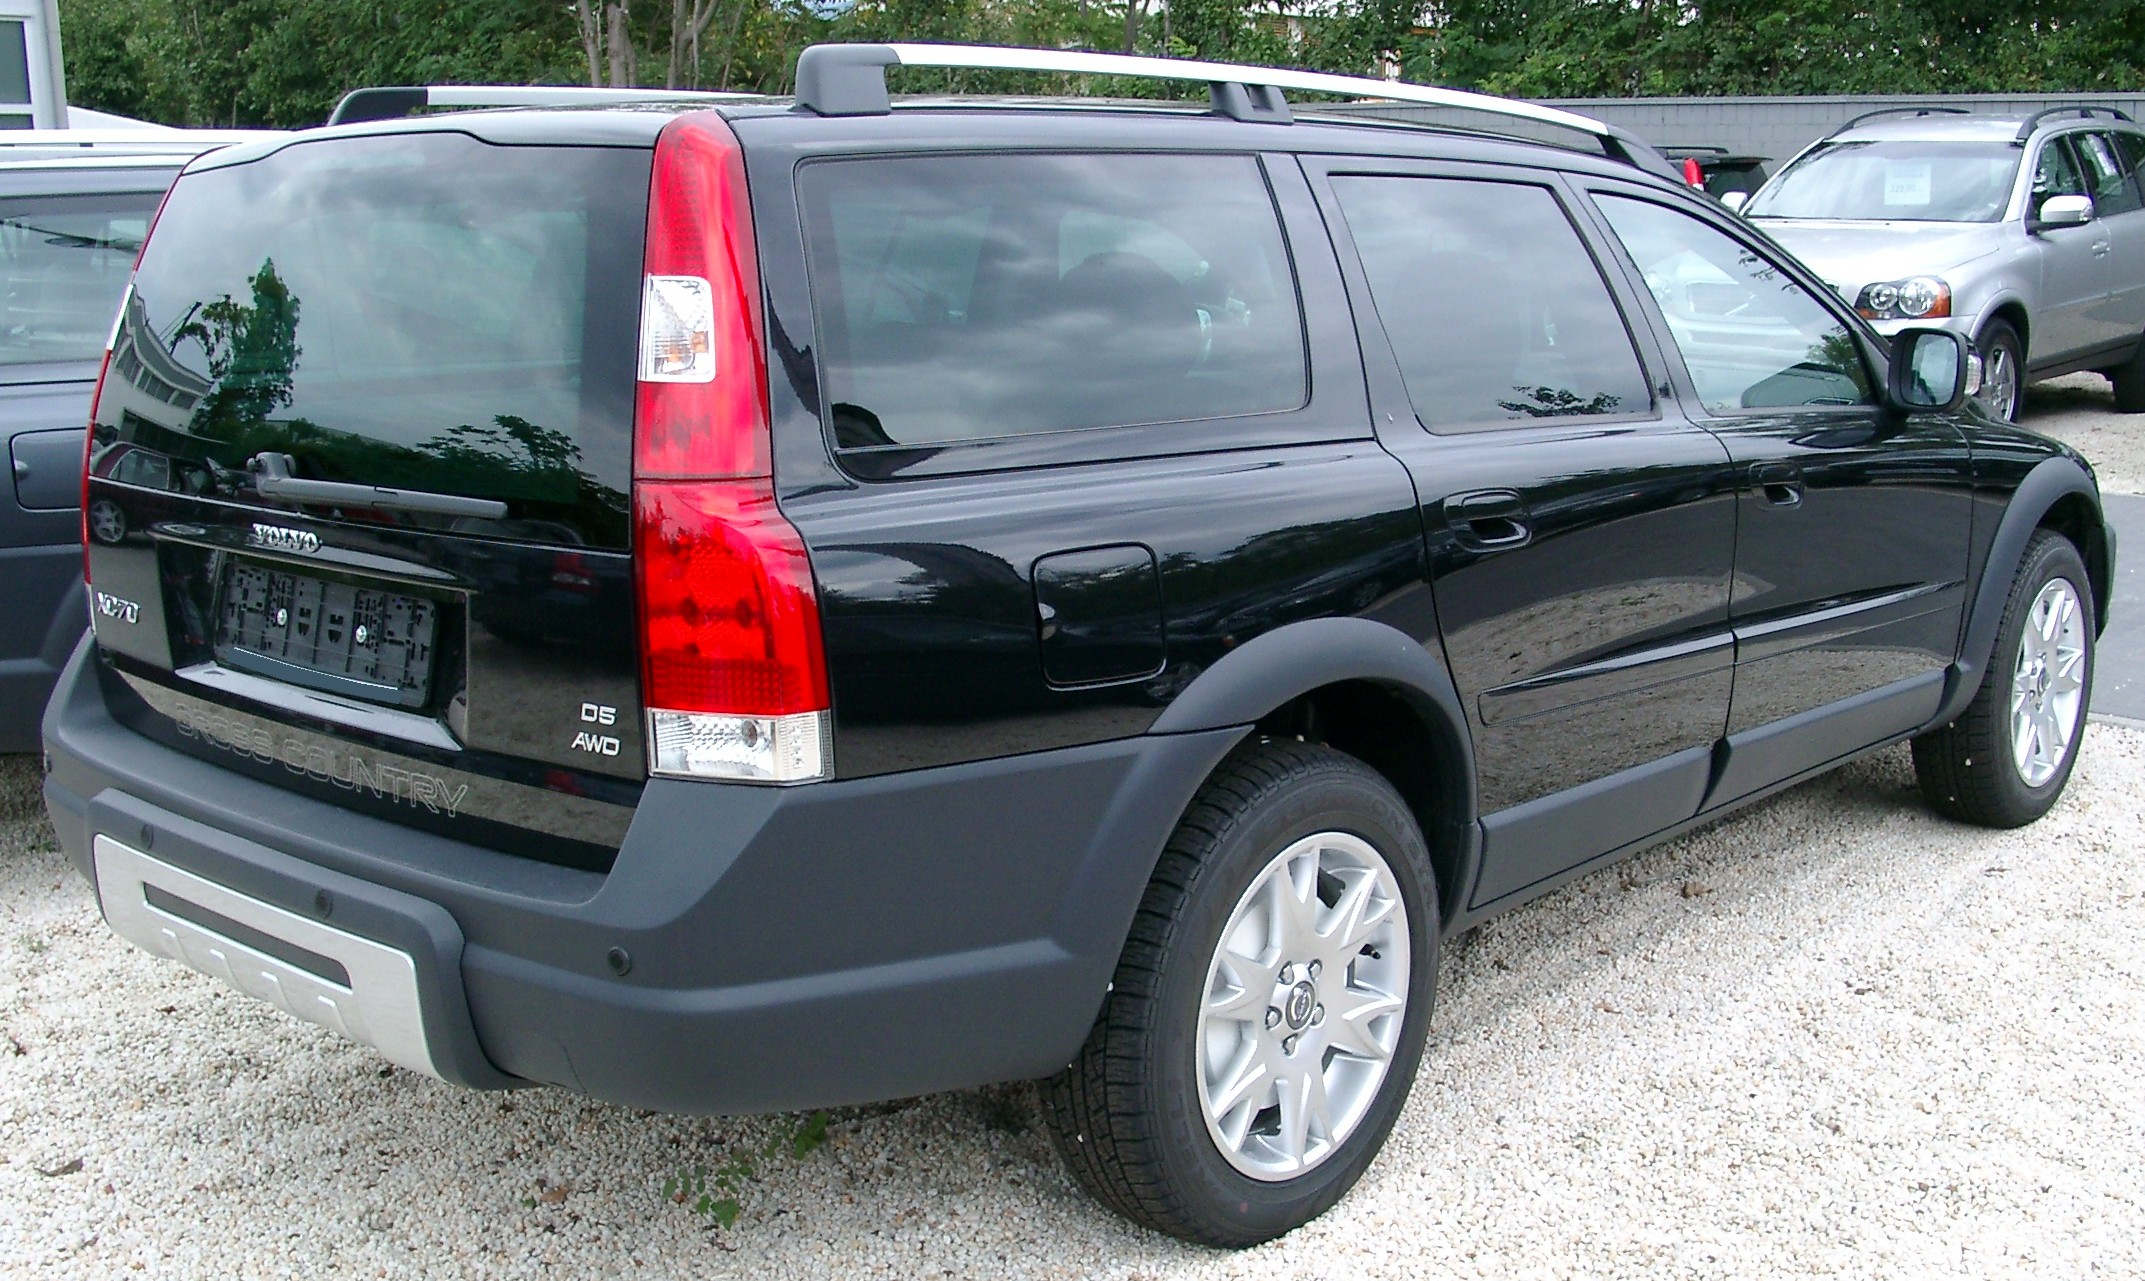 File Volvo Xc70 Rear 20070902 Jpg Wikimedia Commons